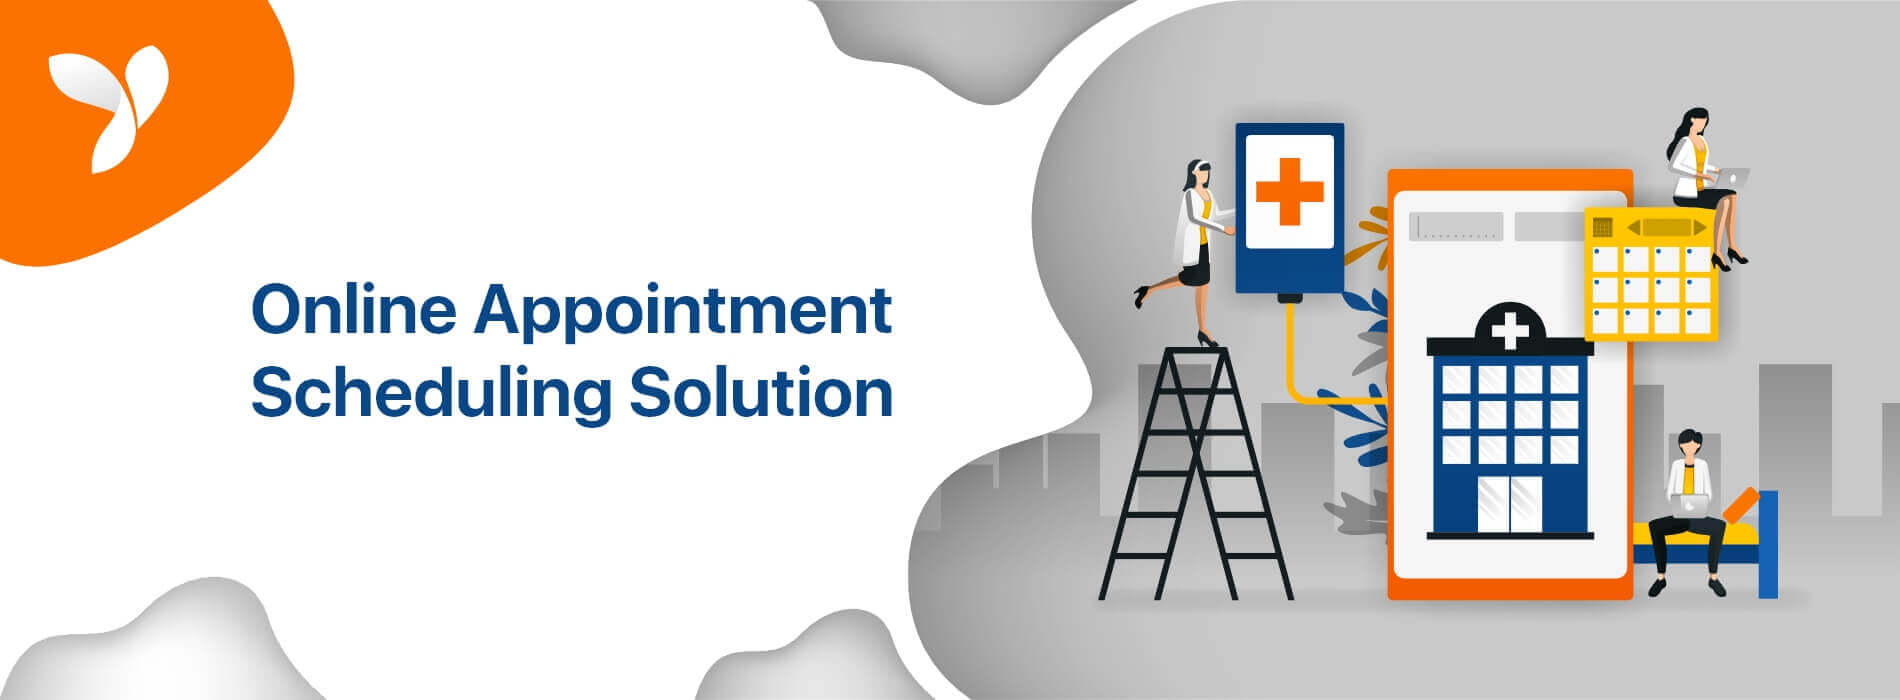 Yii 2.0 - Online Appointment Scheduling Solution for Healthcare Industry